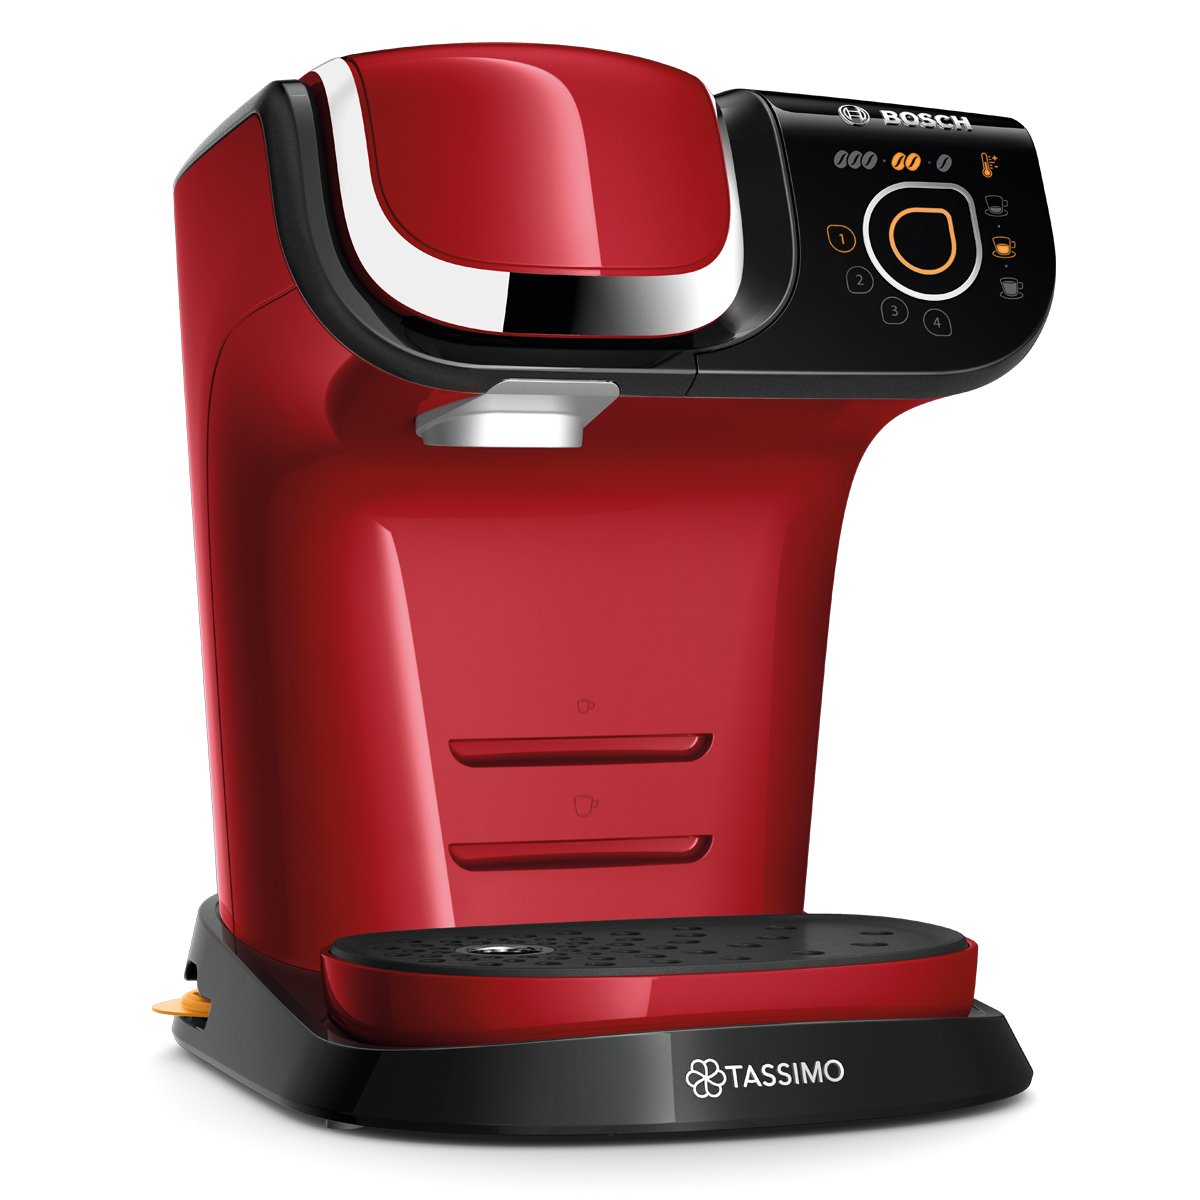 Bosch TAS6003 TASSIMO My Way Cafetera de cápsulas, 1500 W, color rojo: Amazon.es: Hogar